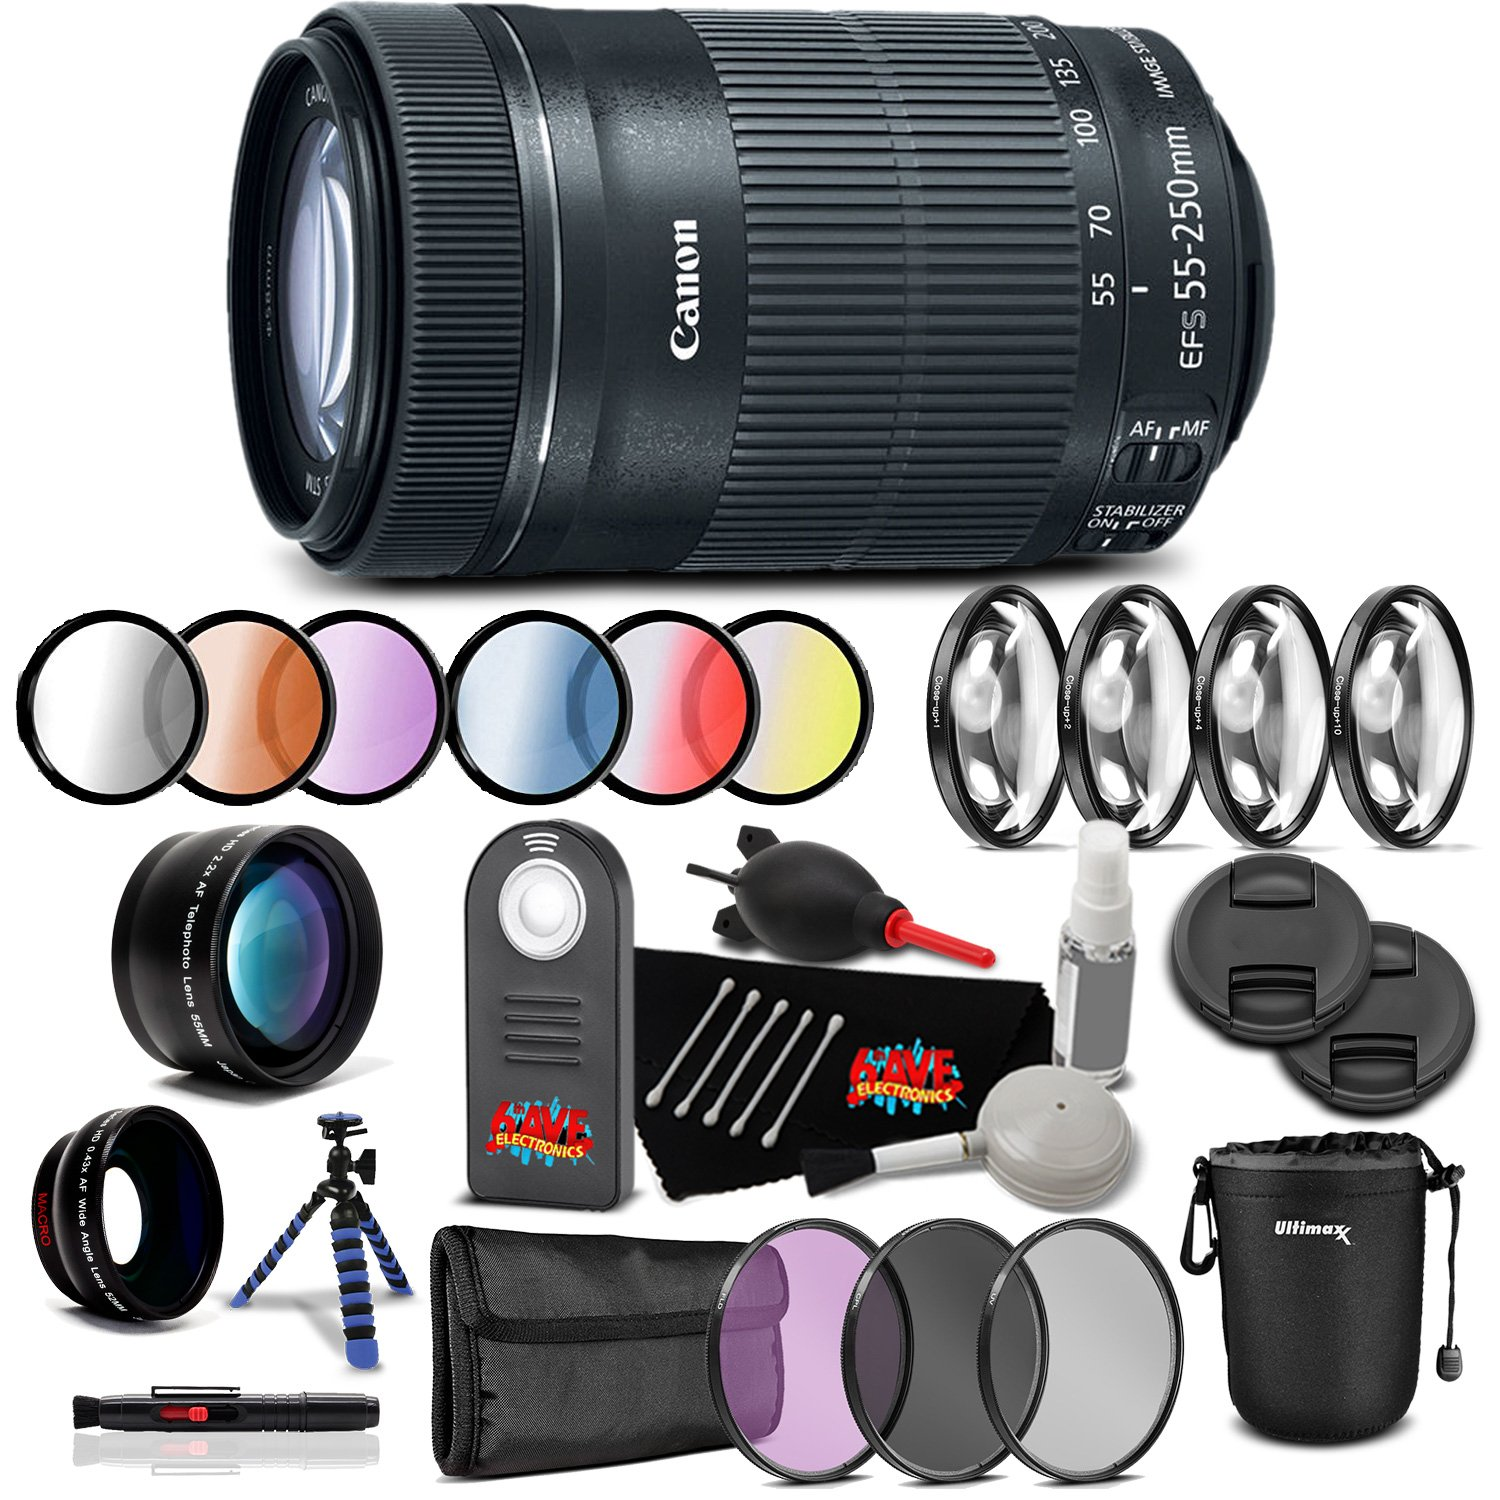 Canon EF 100 mm mm f/2 B07FMH7HSV Professional USMレンズアクセサリーバンドル国際モデル B07FMH7HSV Professional Kit|55-250mm f/4-5.6 55-250mm f/4-5.6 Professional Kit, トヨシナマチ:b16890ff --- ijpba.info